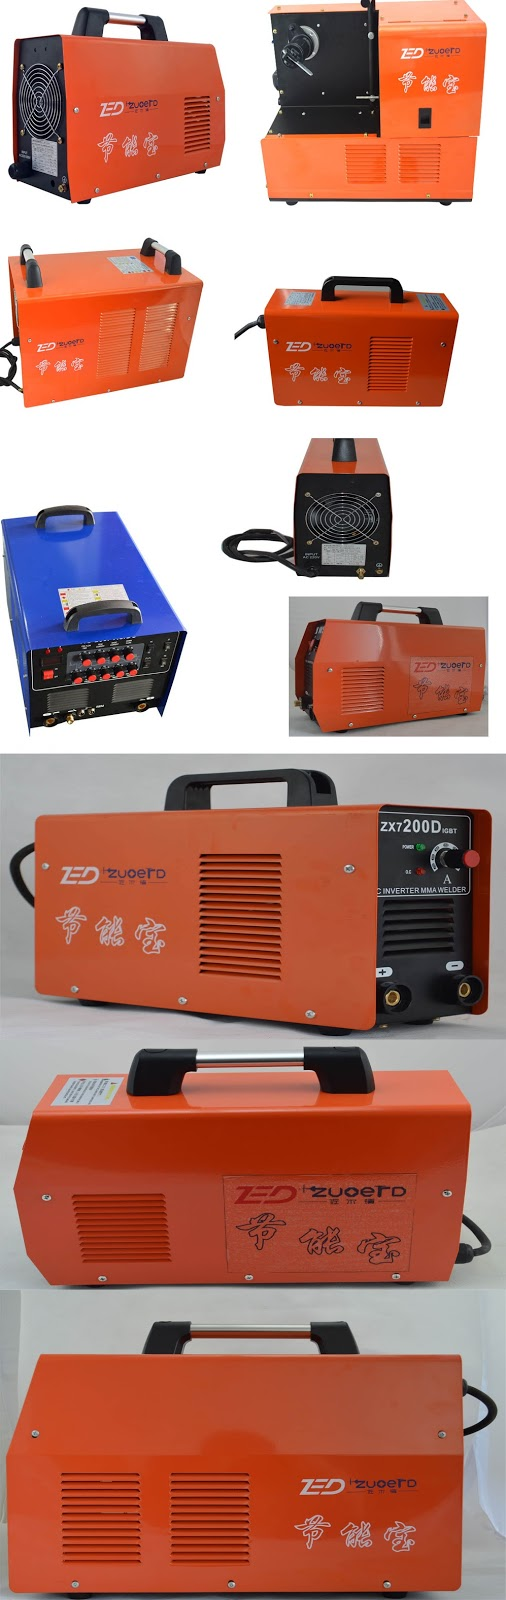 medium resolution of mos dc inverter tig welder igbt gas shielded welding machine mos inverter air plasma cutting machine mos dc inverter manual arc welding machine